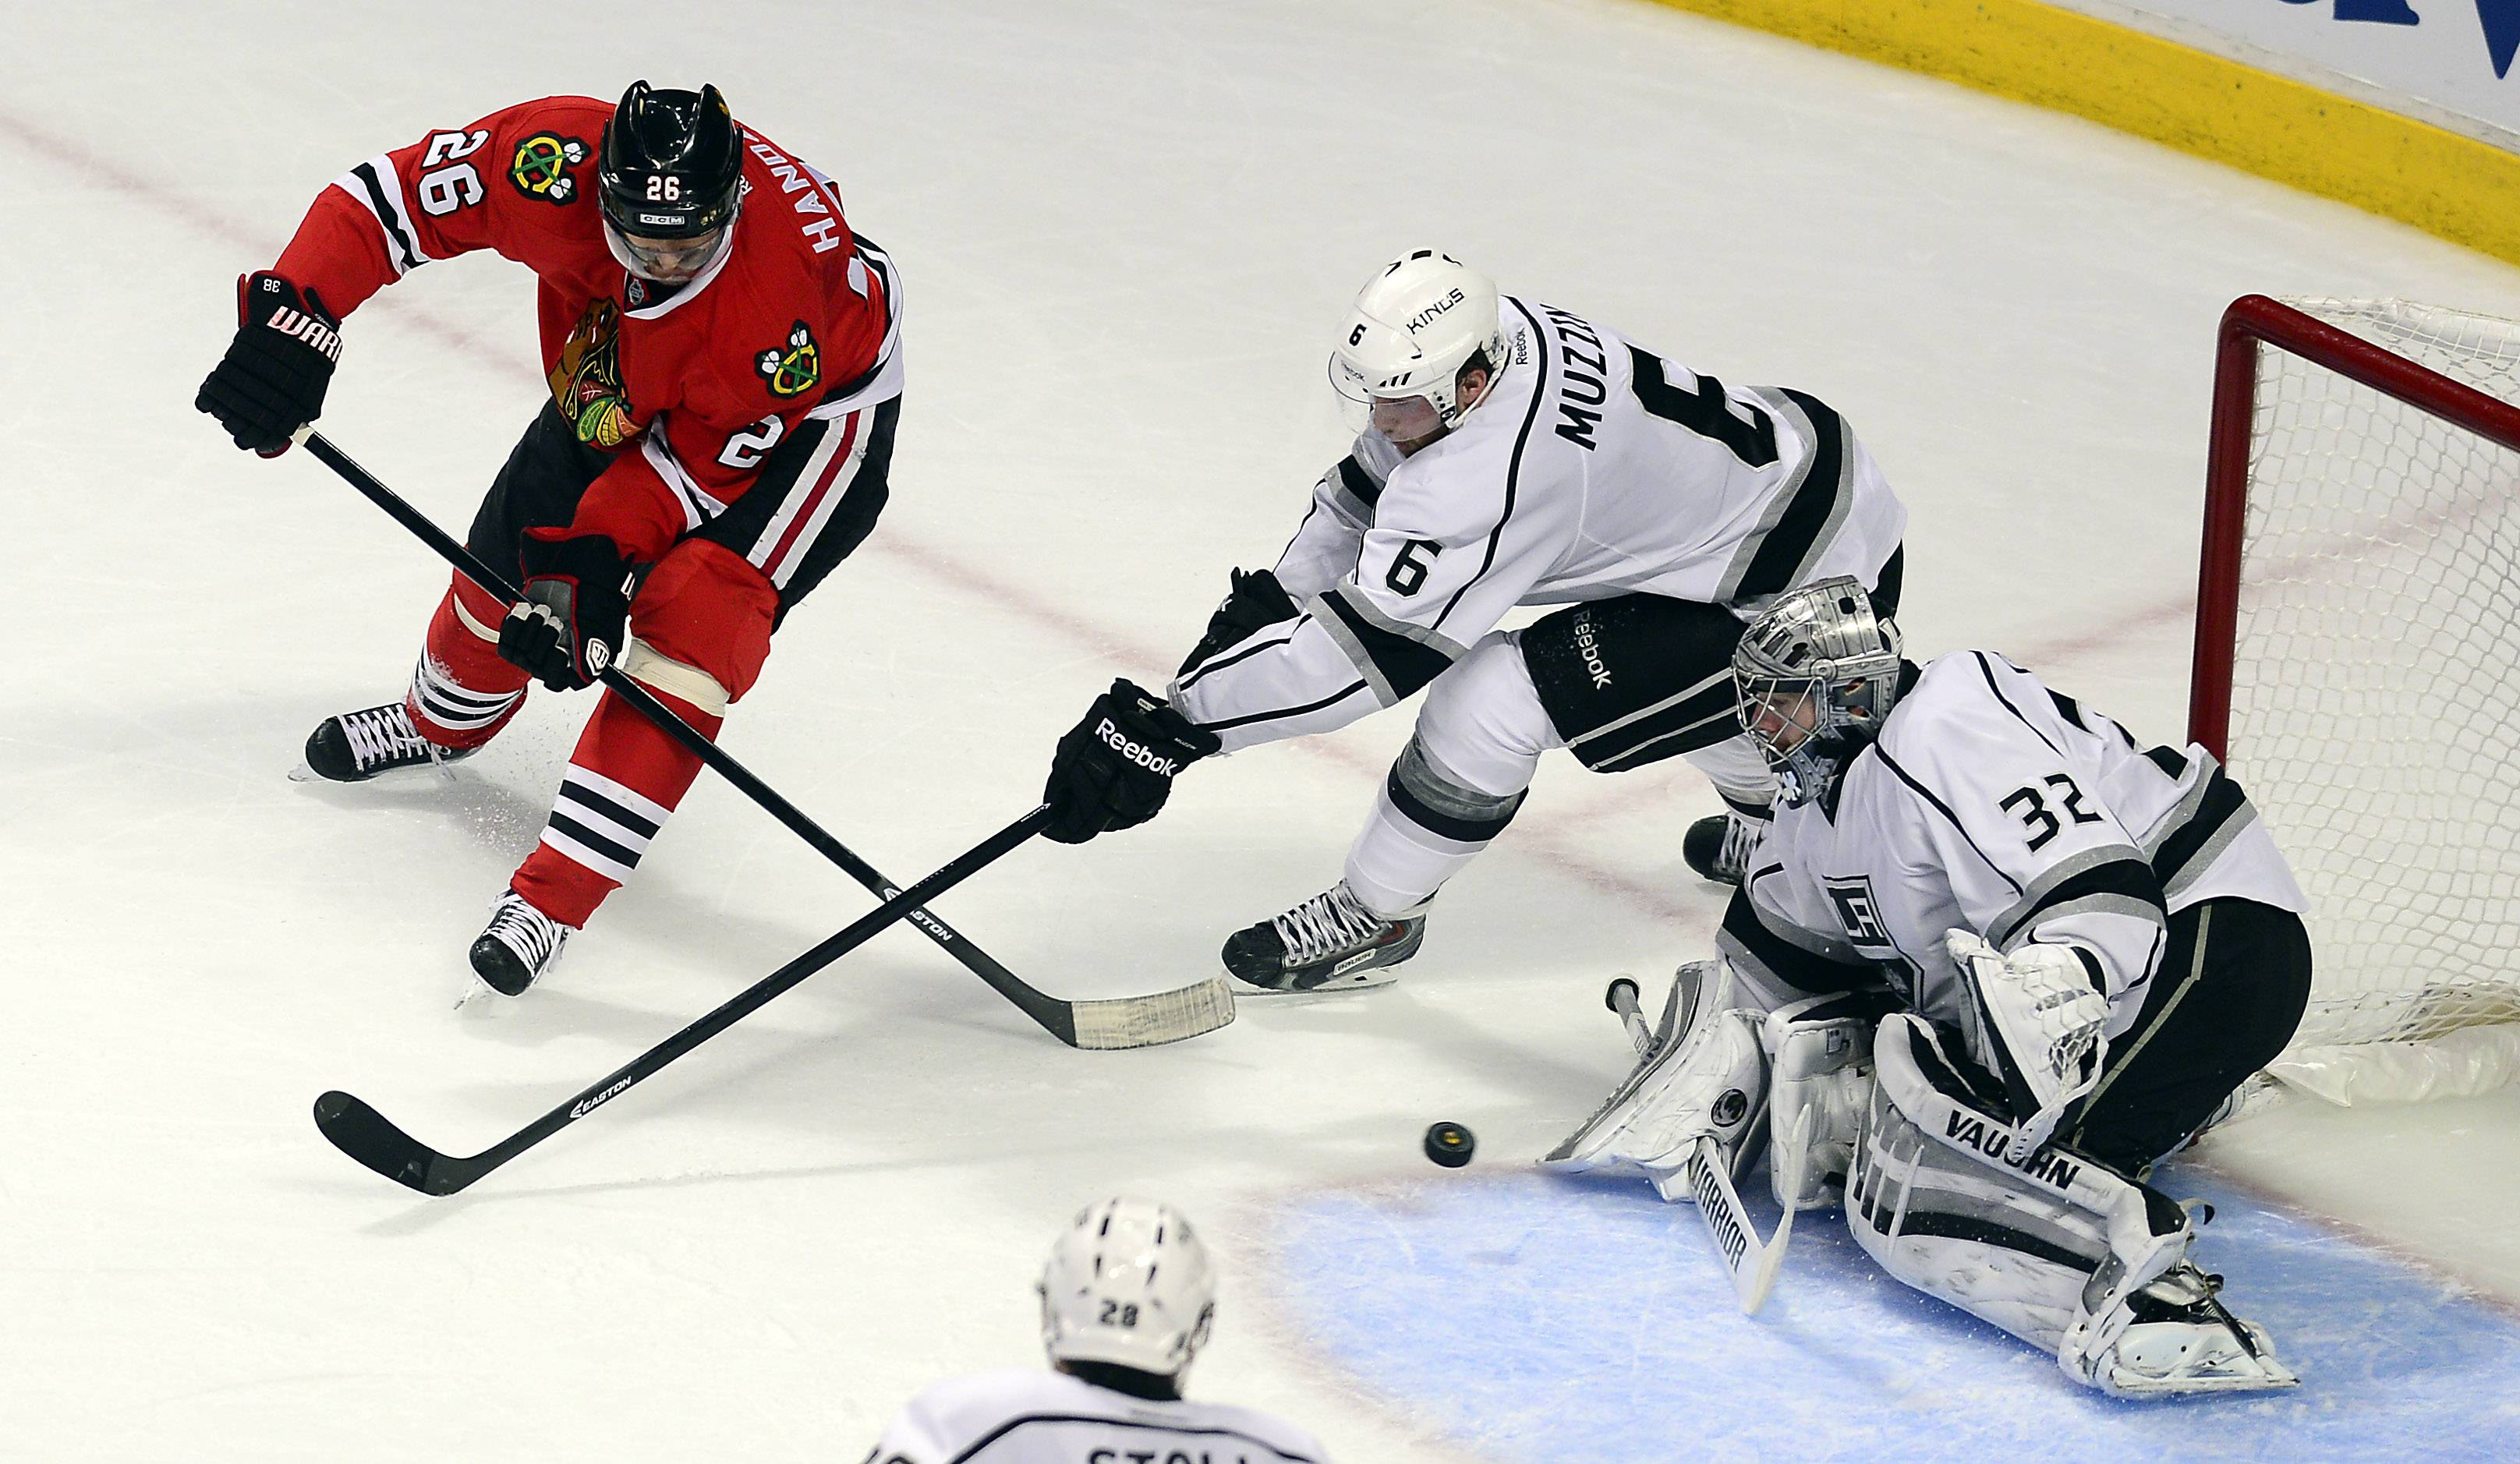 Blackhawks Michal Handzus shoots in the second period against Los Angeles goalie Jonathan Quick and Jake Muzzin in Game 2.